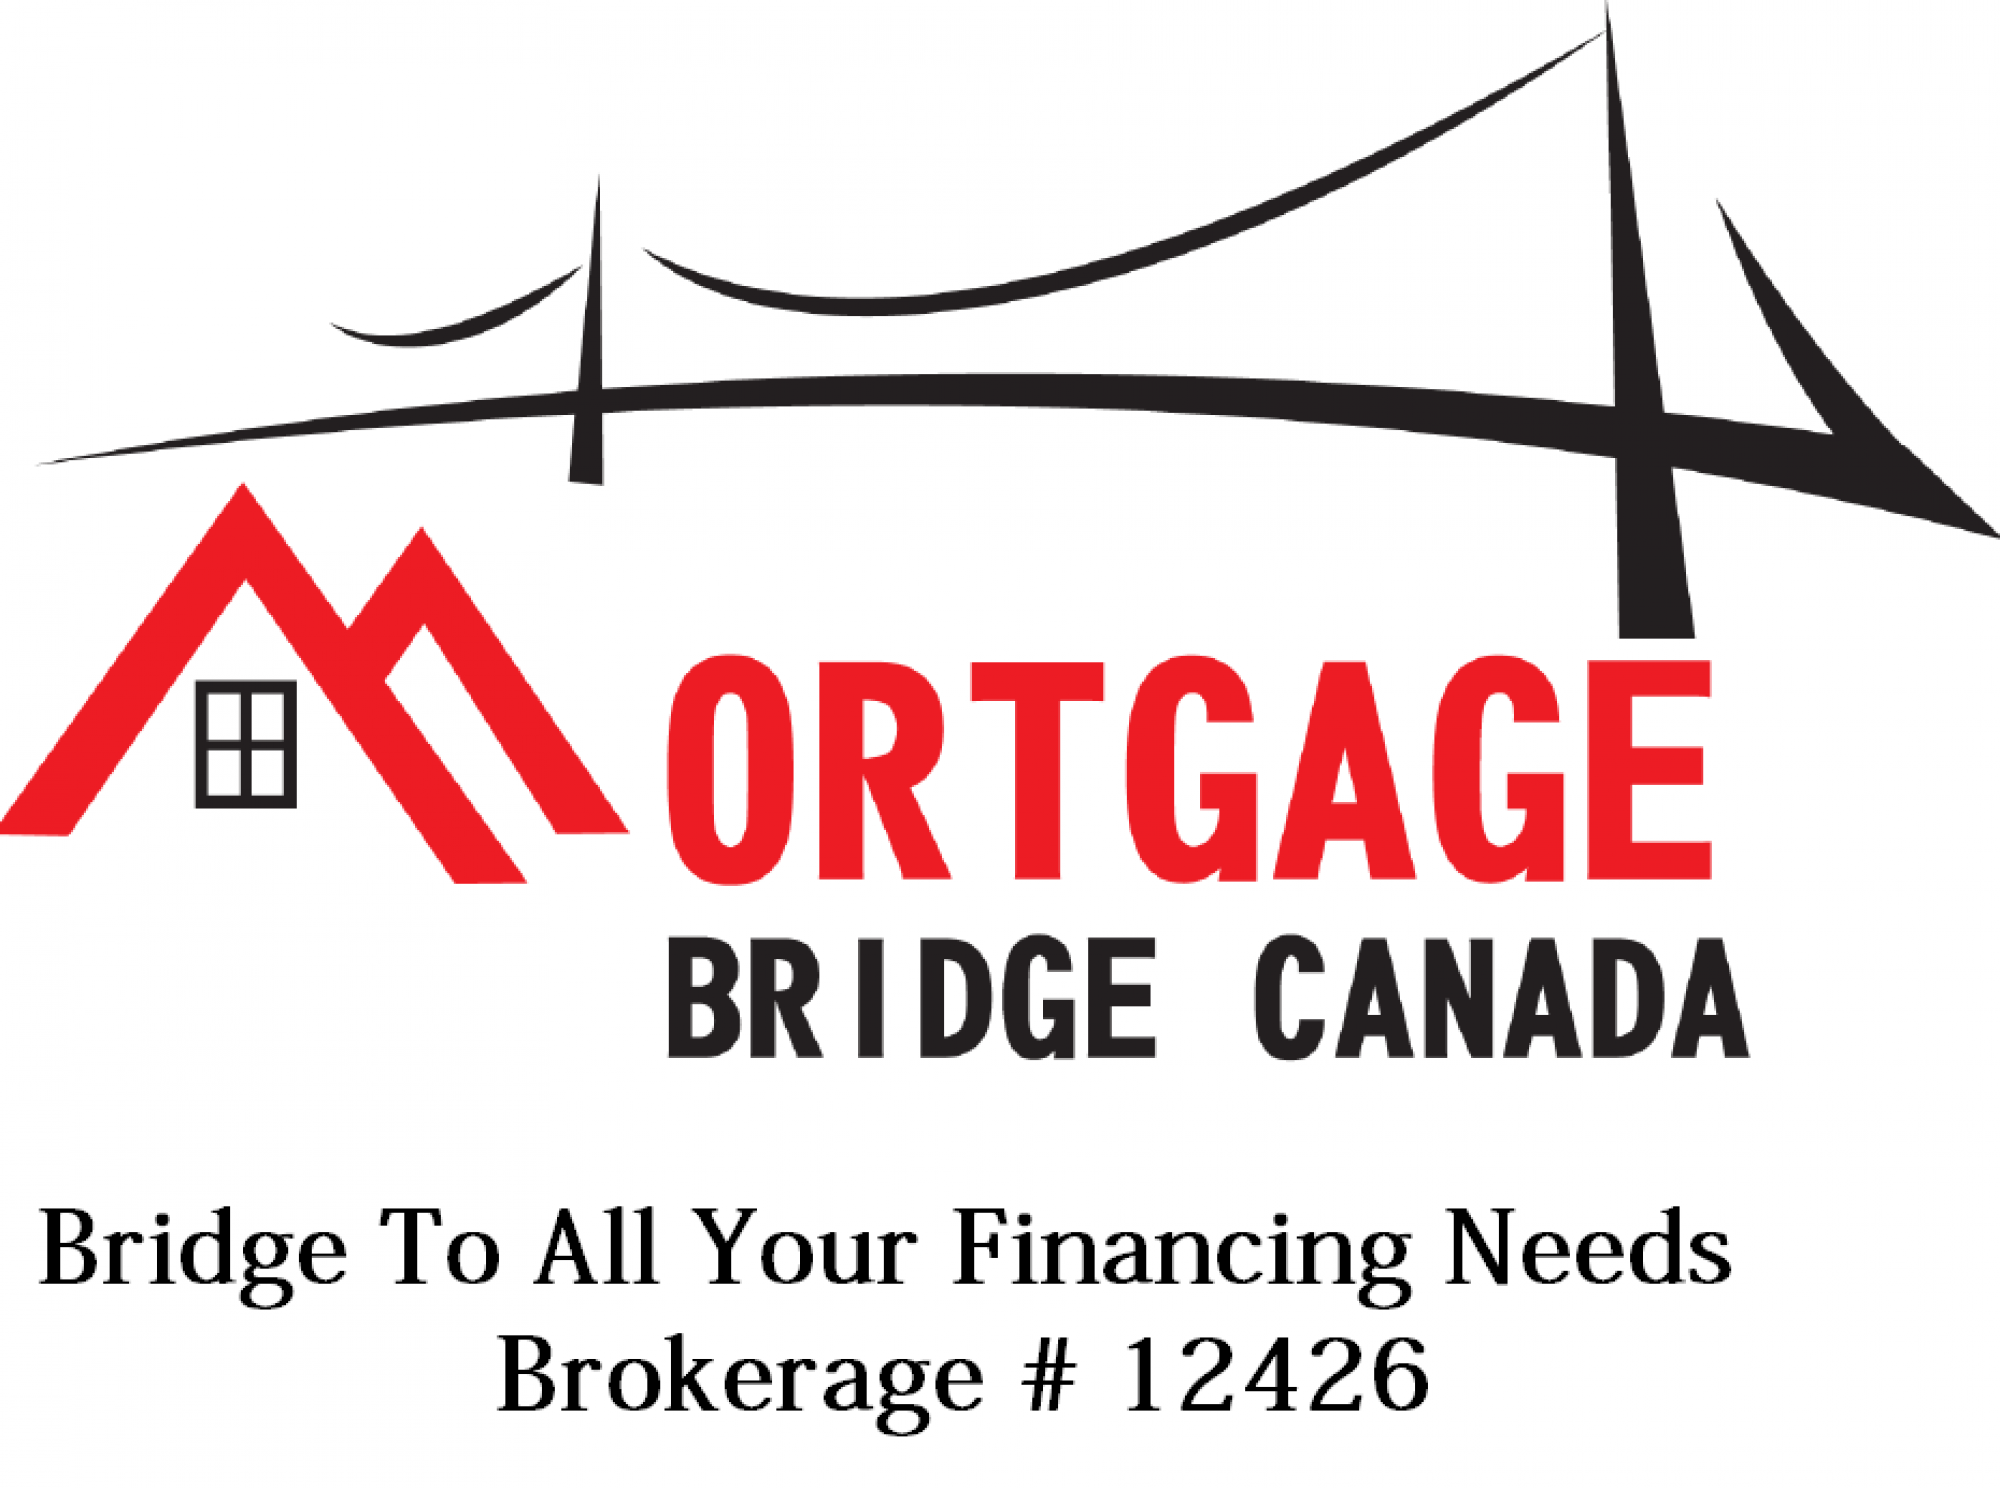 are you looking for home purchase in canada we are at mortgage